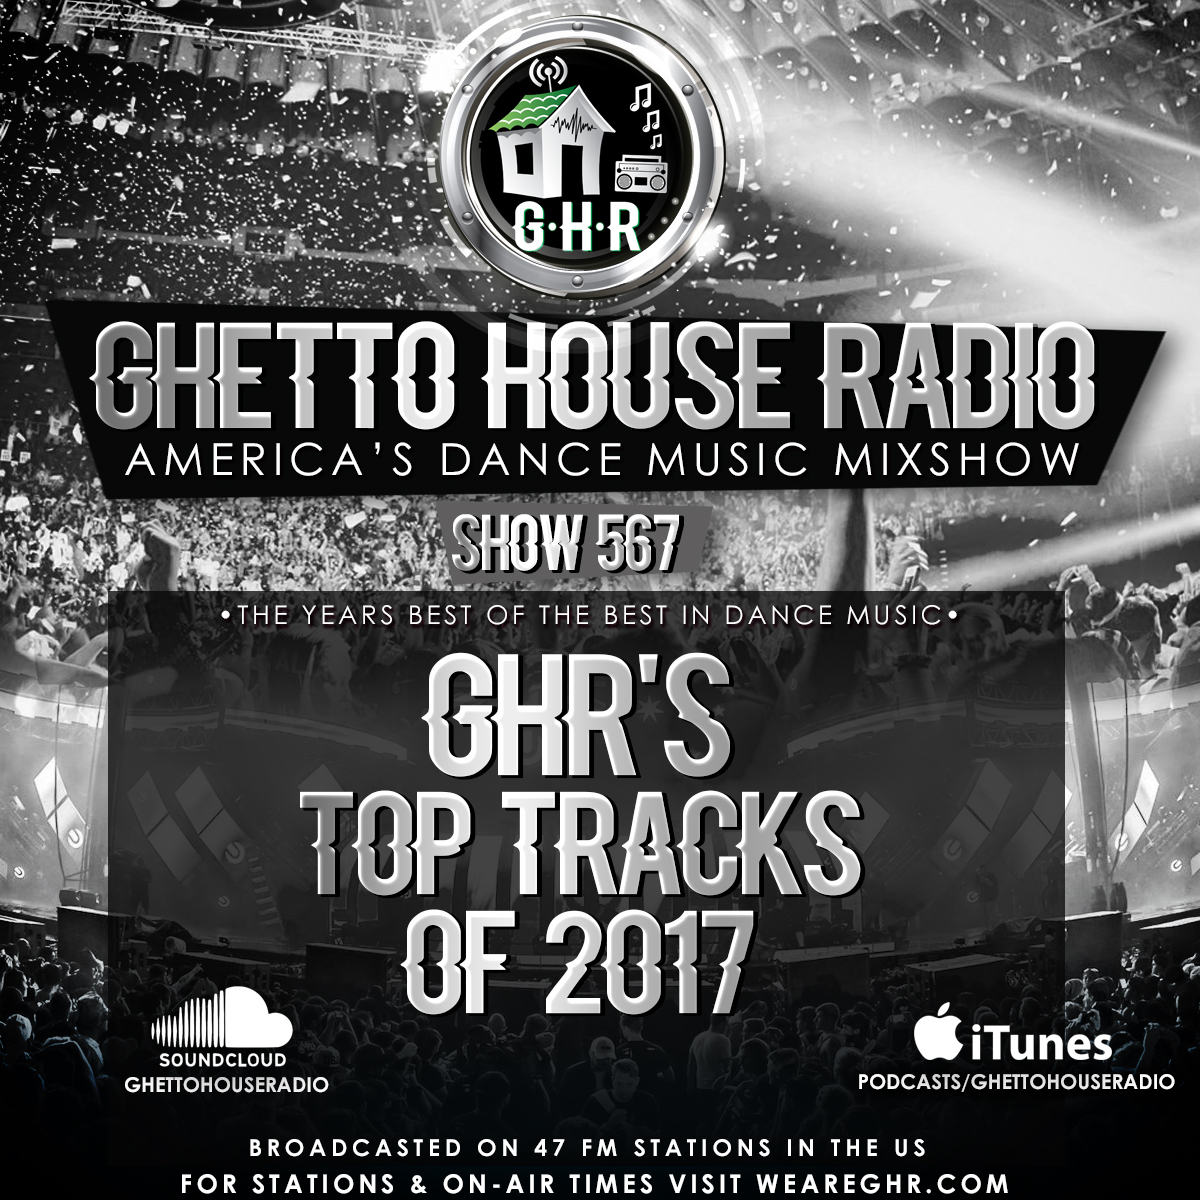 GHR's Top Tracks of 2017